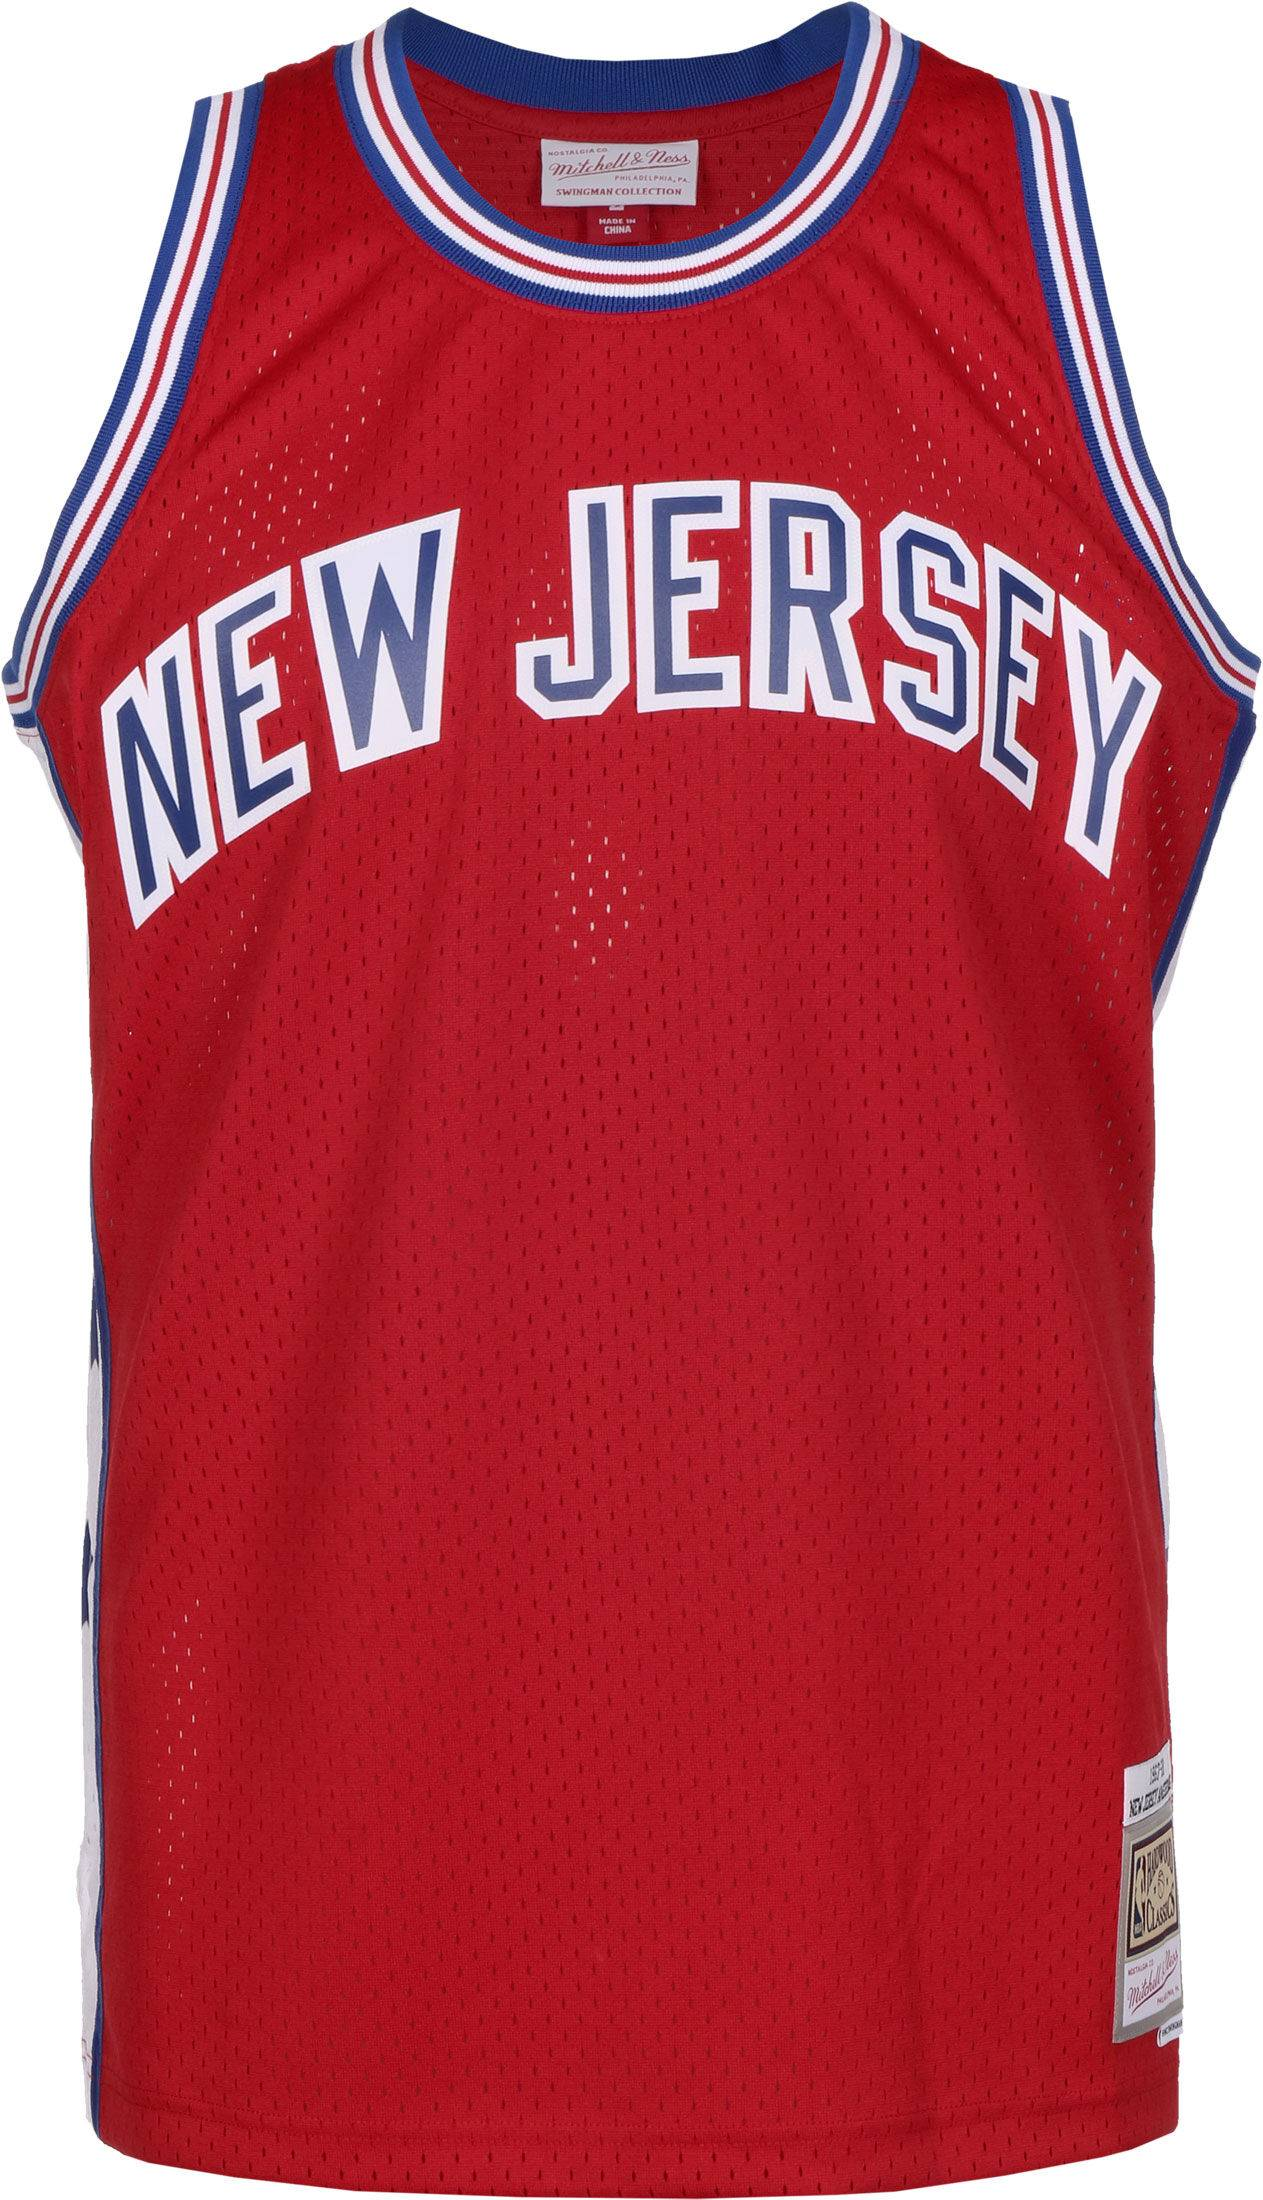 Mitchell & Ness 1967-68 New Jersey American Swingman, taille XL, homme, rouge